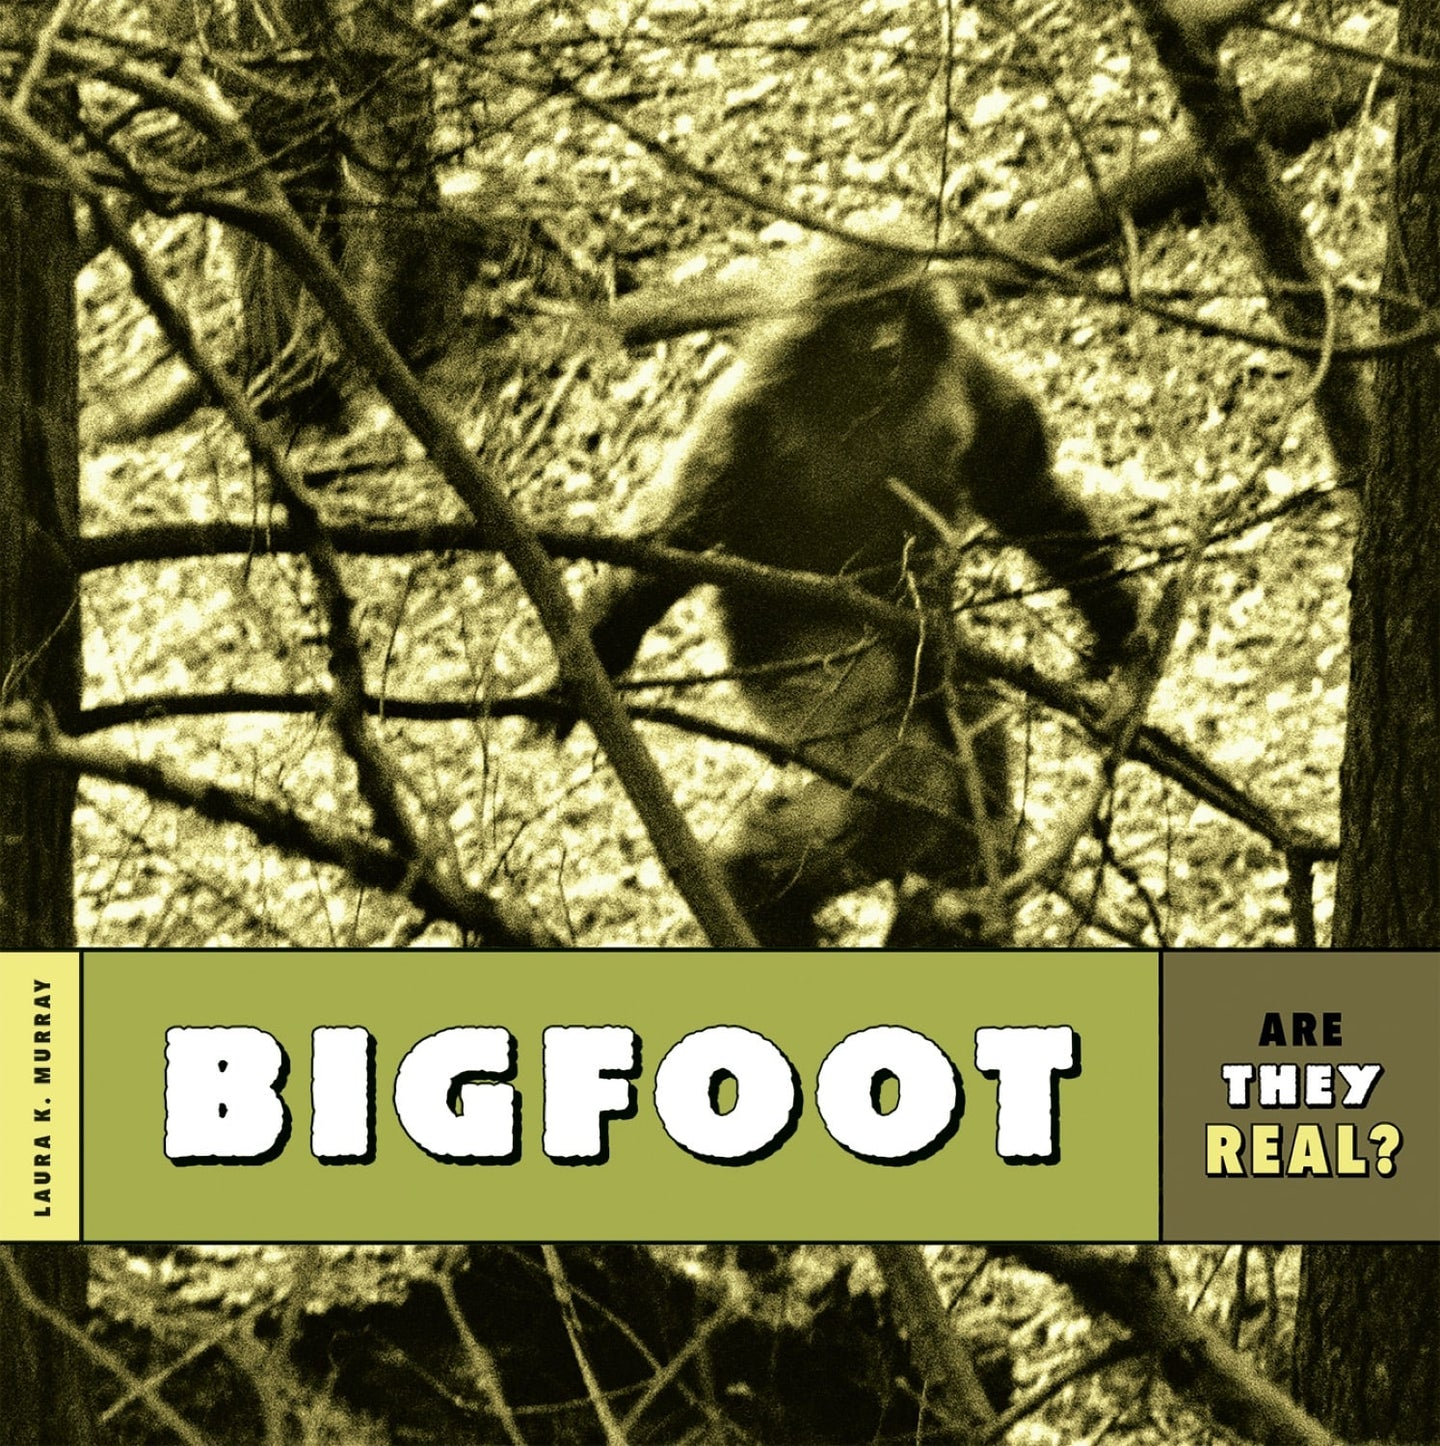 Are They Real?: Bigfoot